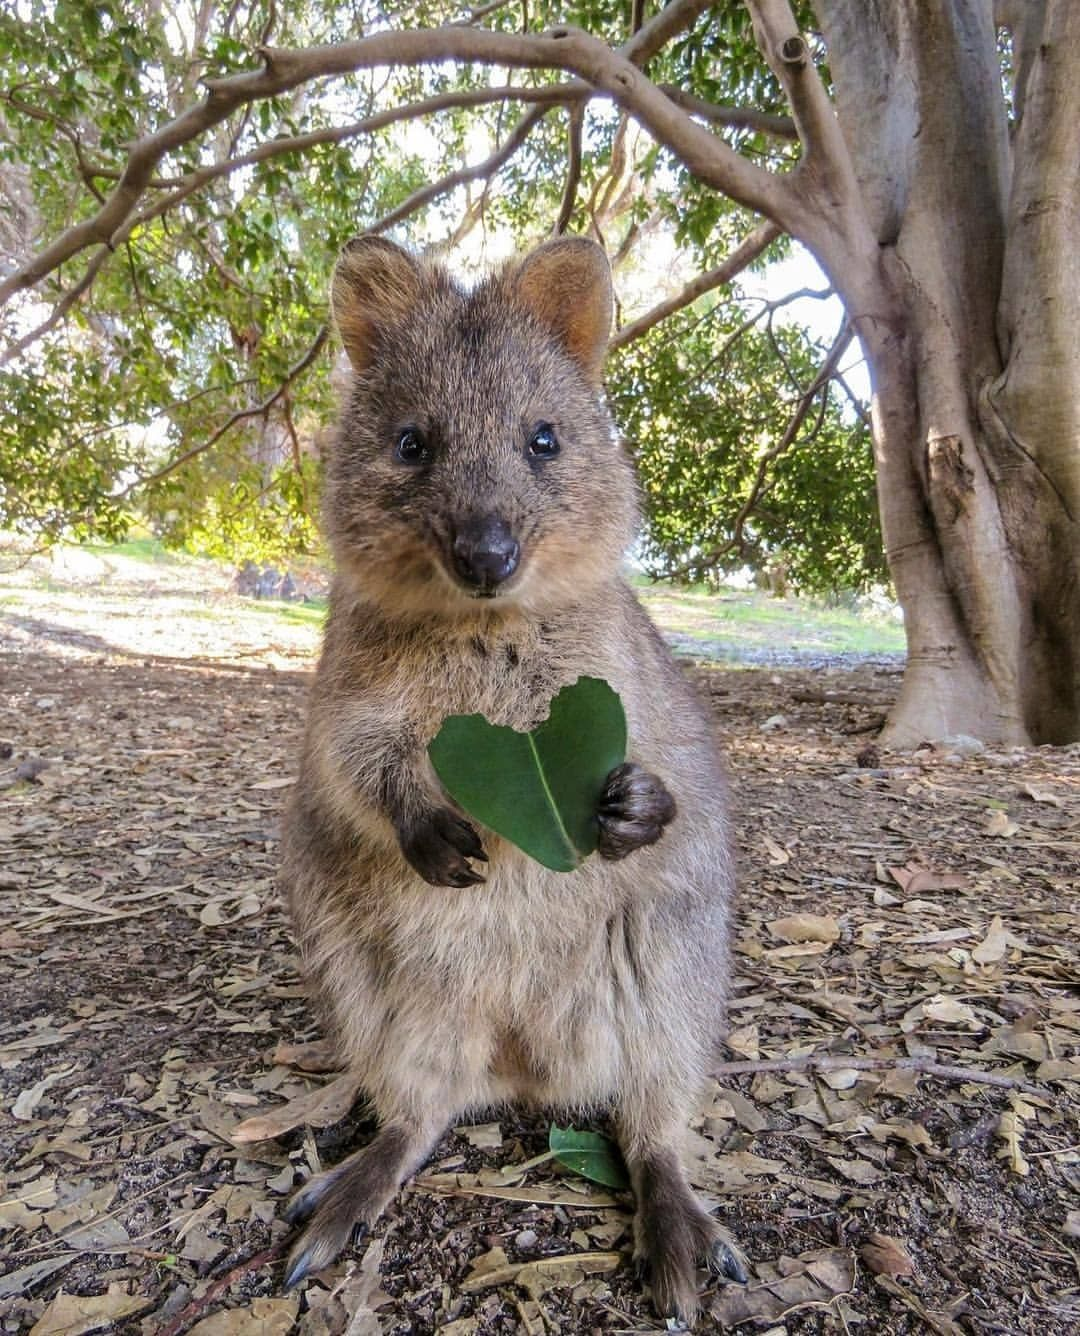 How Perfect A Super Cute Quokka And A Perfectly Heart Shaped Leaf